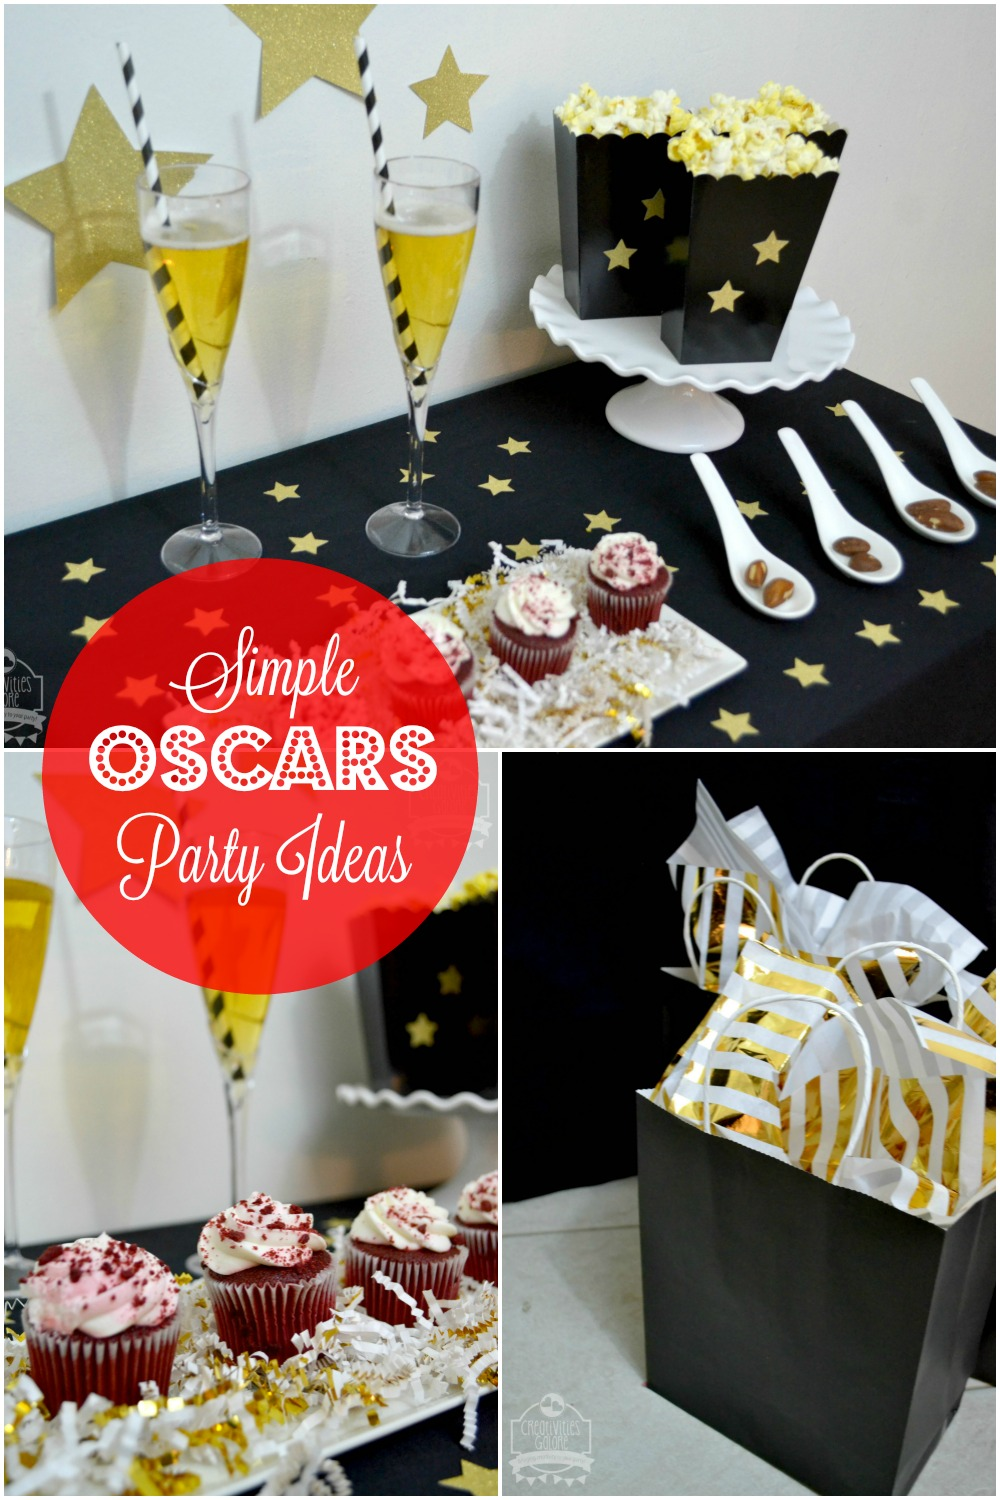 Hopefully These Simple Oscars Party Ideas Gave You Some Inspiration Are Planning On Dressing Up And Hosting An Viewing This Year